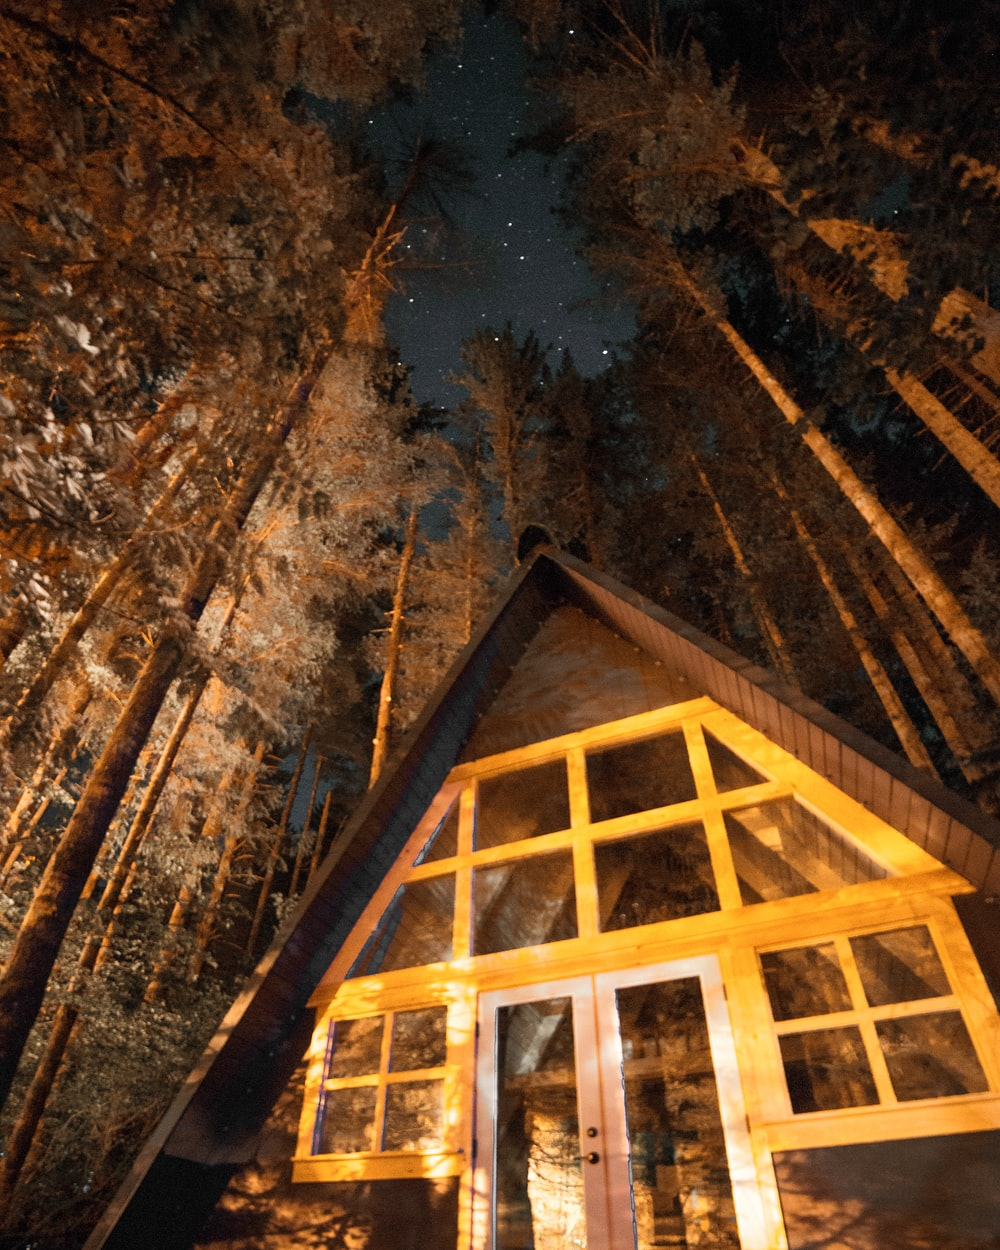 worm view photo of cabin and trees